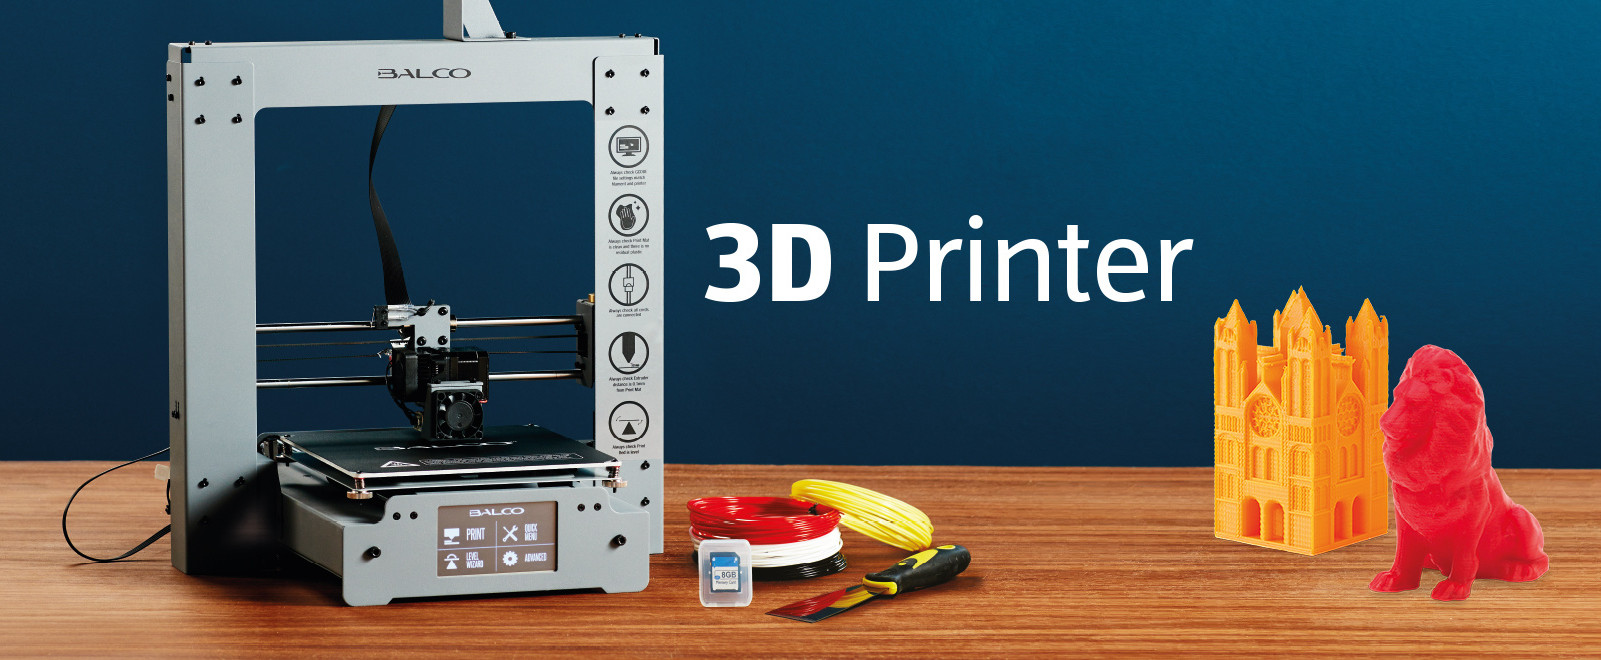 D Printer Exhibition Uk : Affordable d printer kit for only £ aldi uk